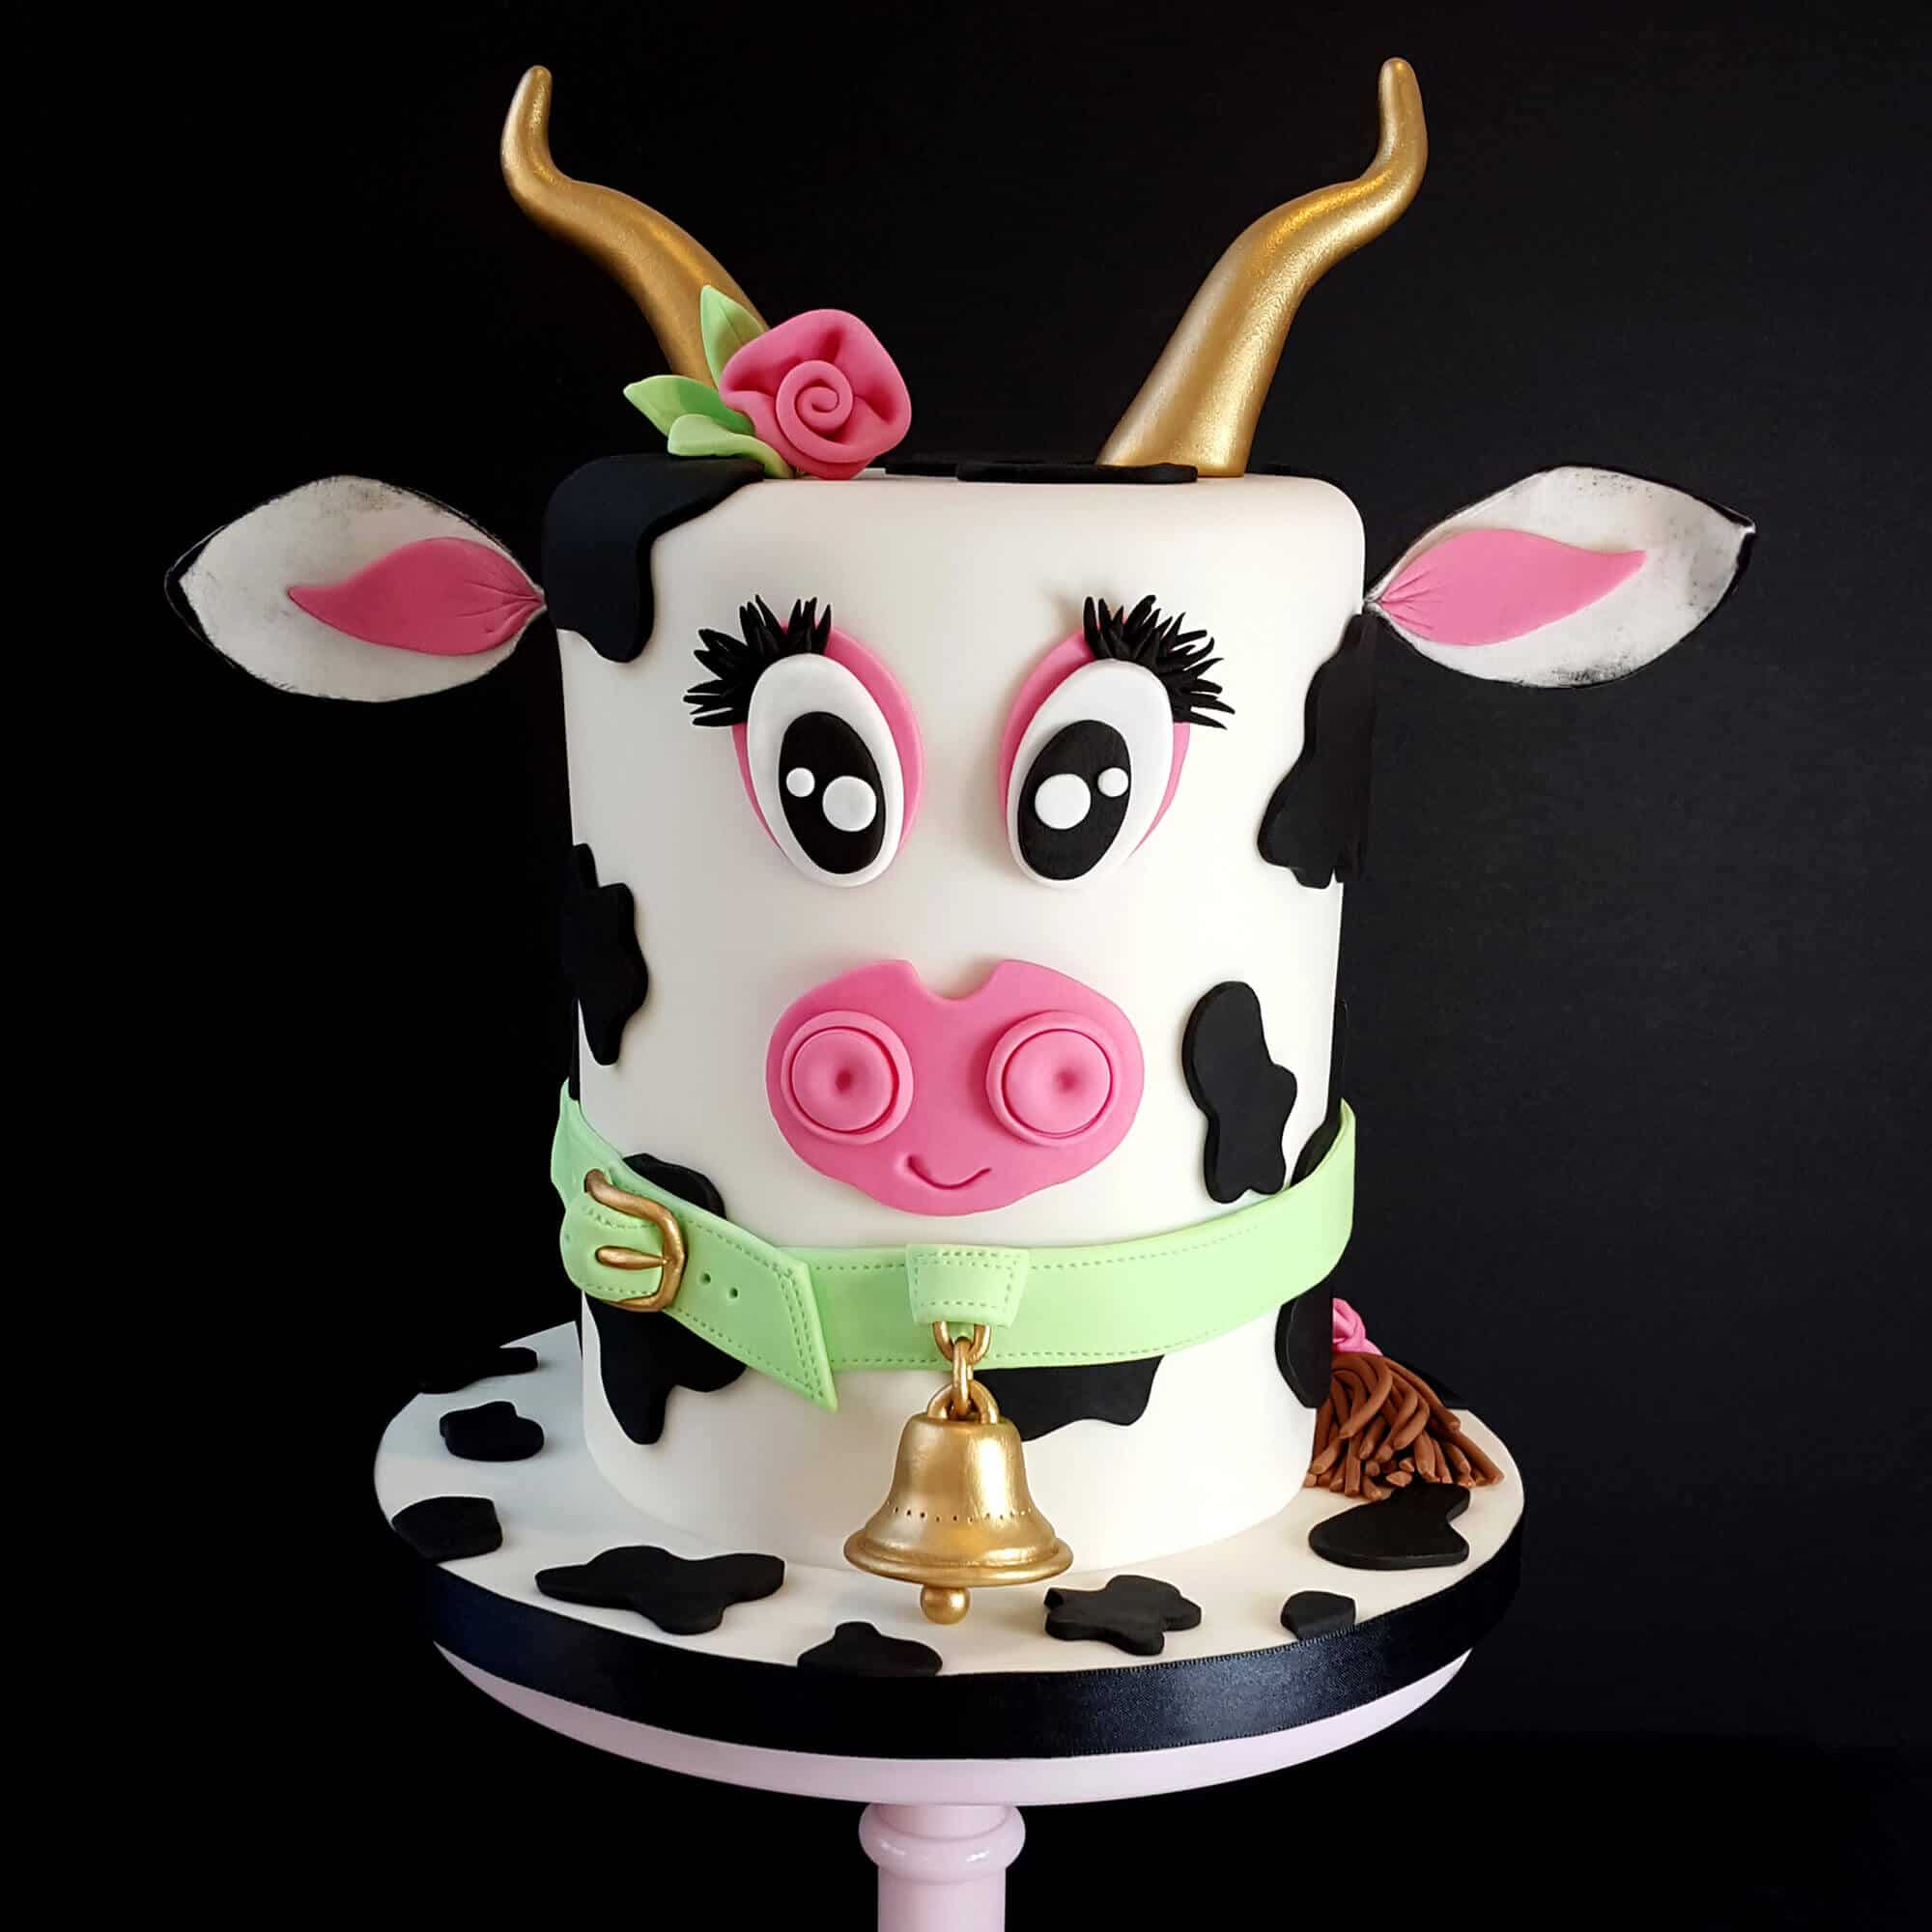 Bespoke cow design cake by Cake No Mistake